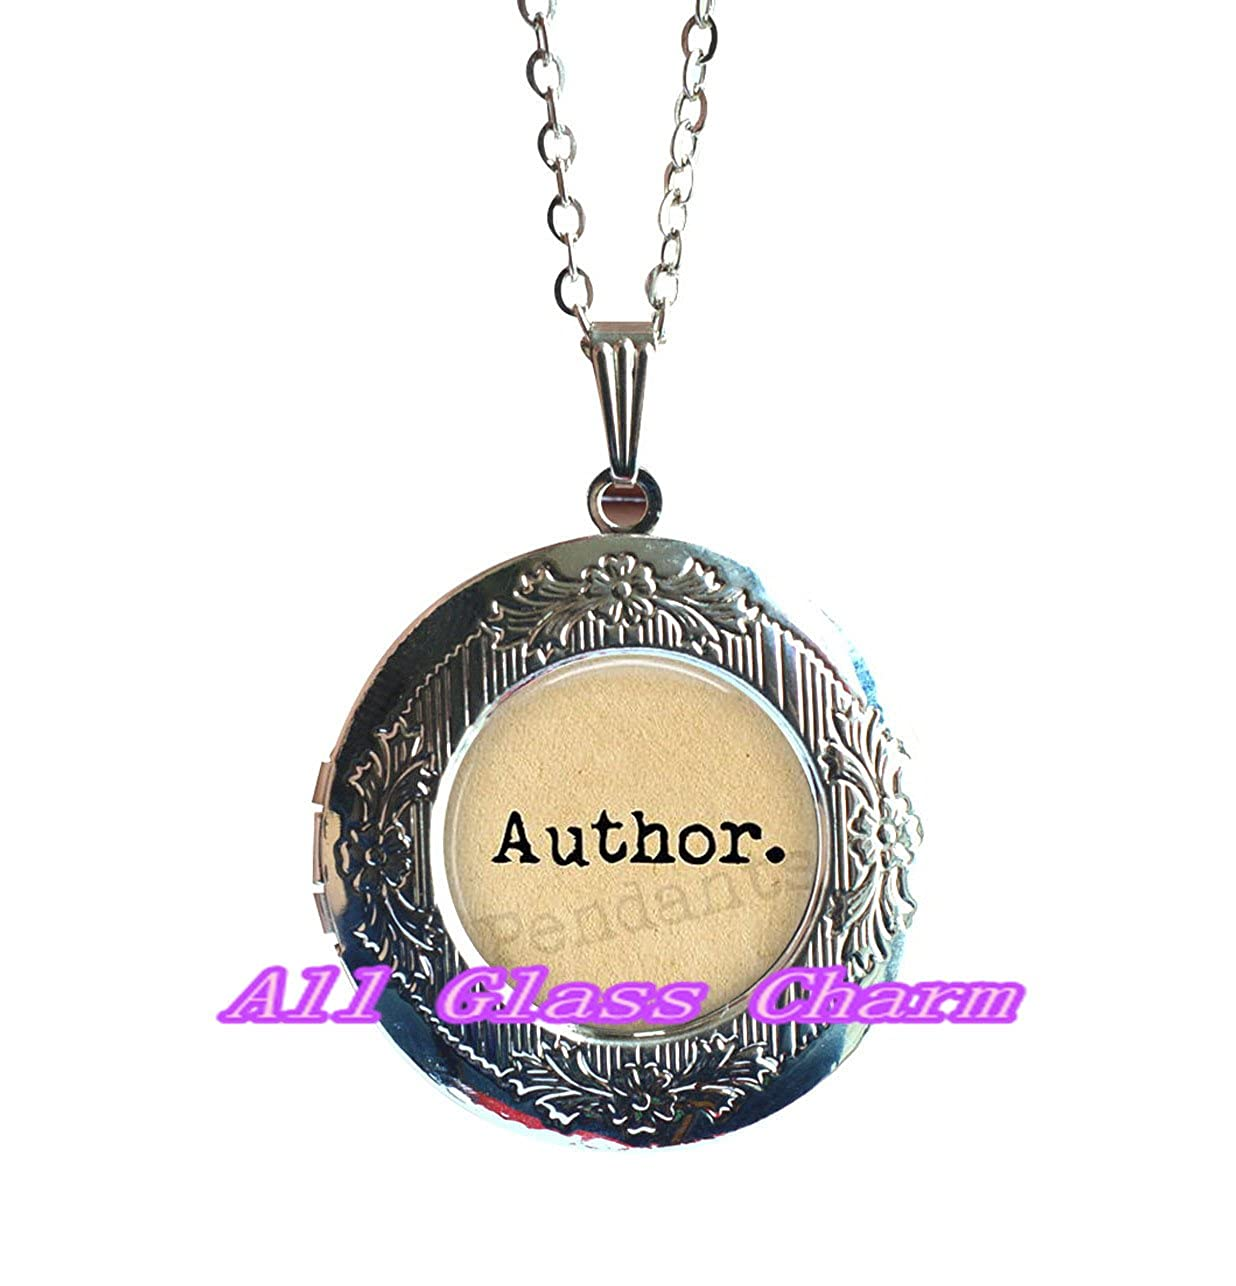 writing jewellery Beautiful Locket Necklace,Author Locket Necklace Locket Pendant author jewelry writer jewelry love to write literature jewelry,AS0171 gift for writer